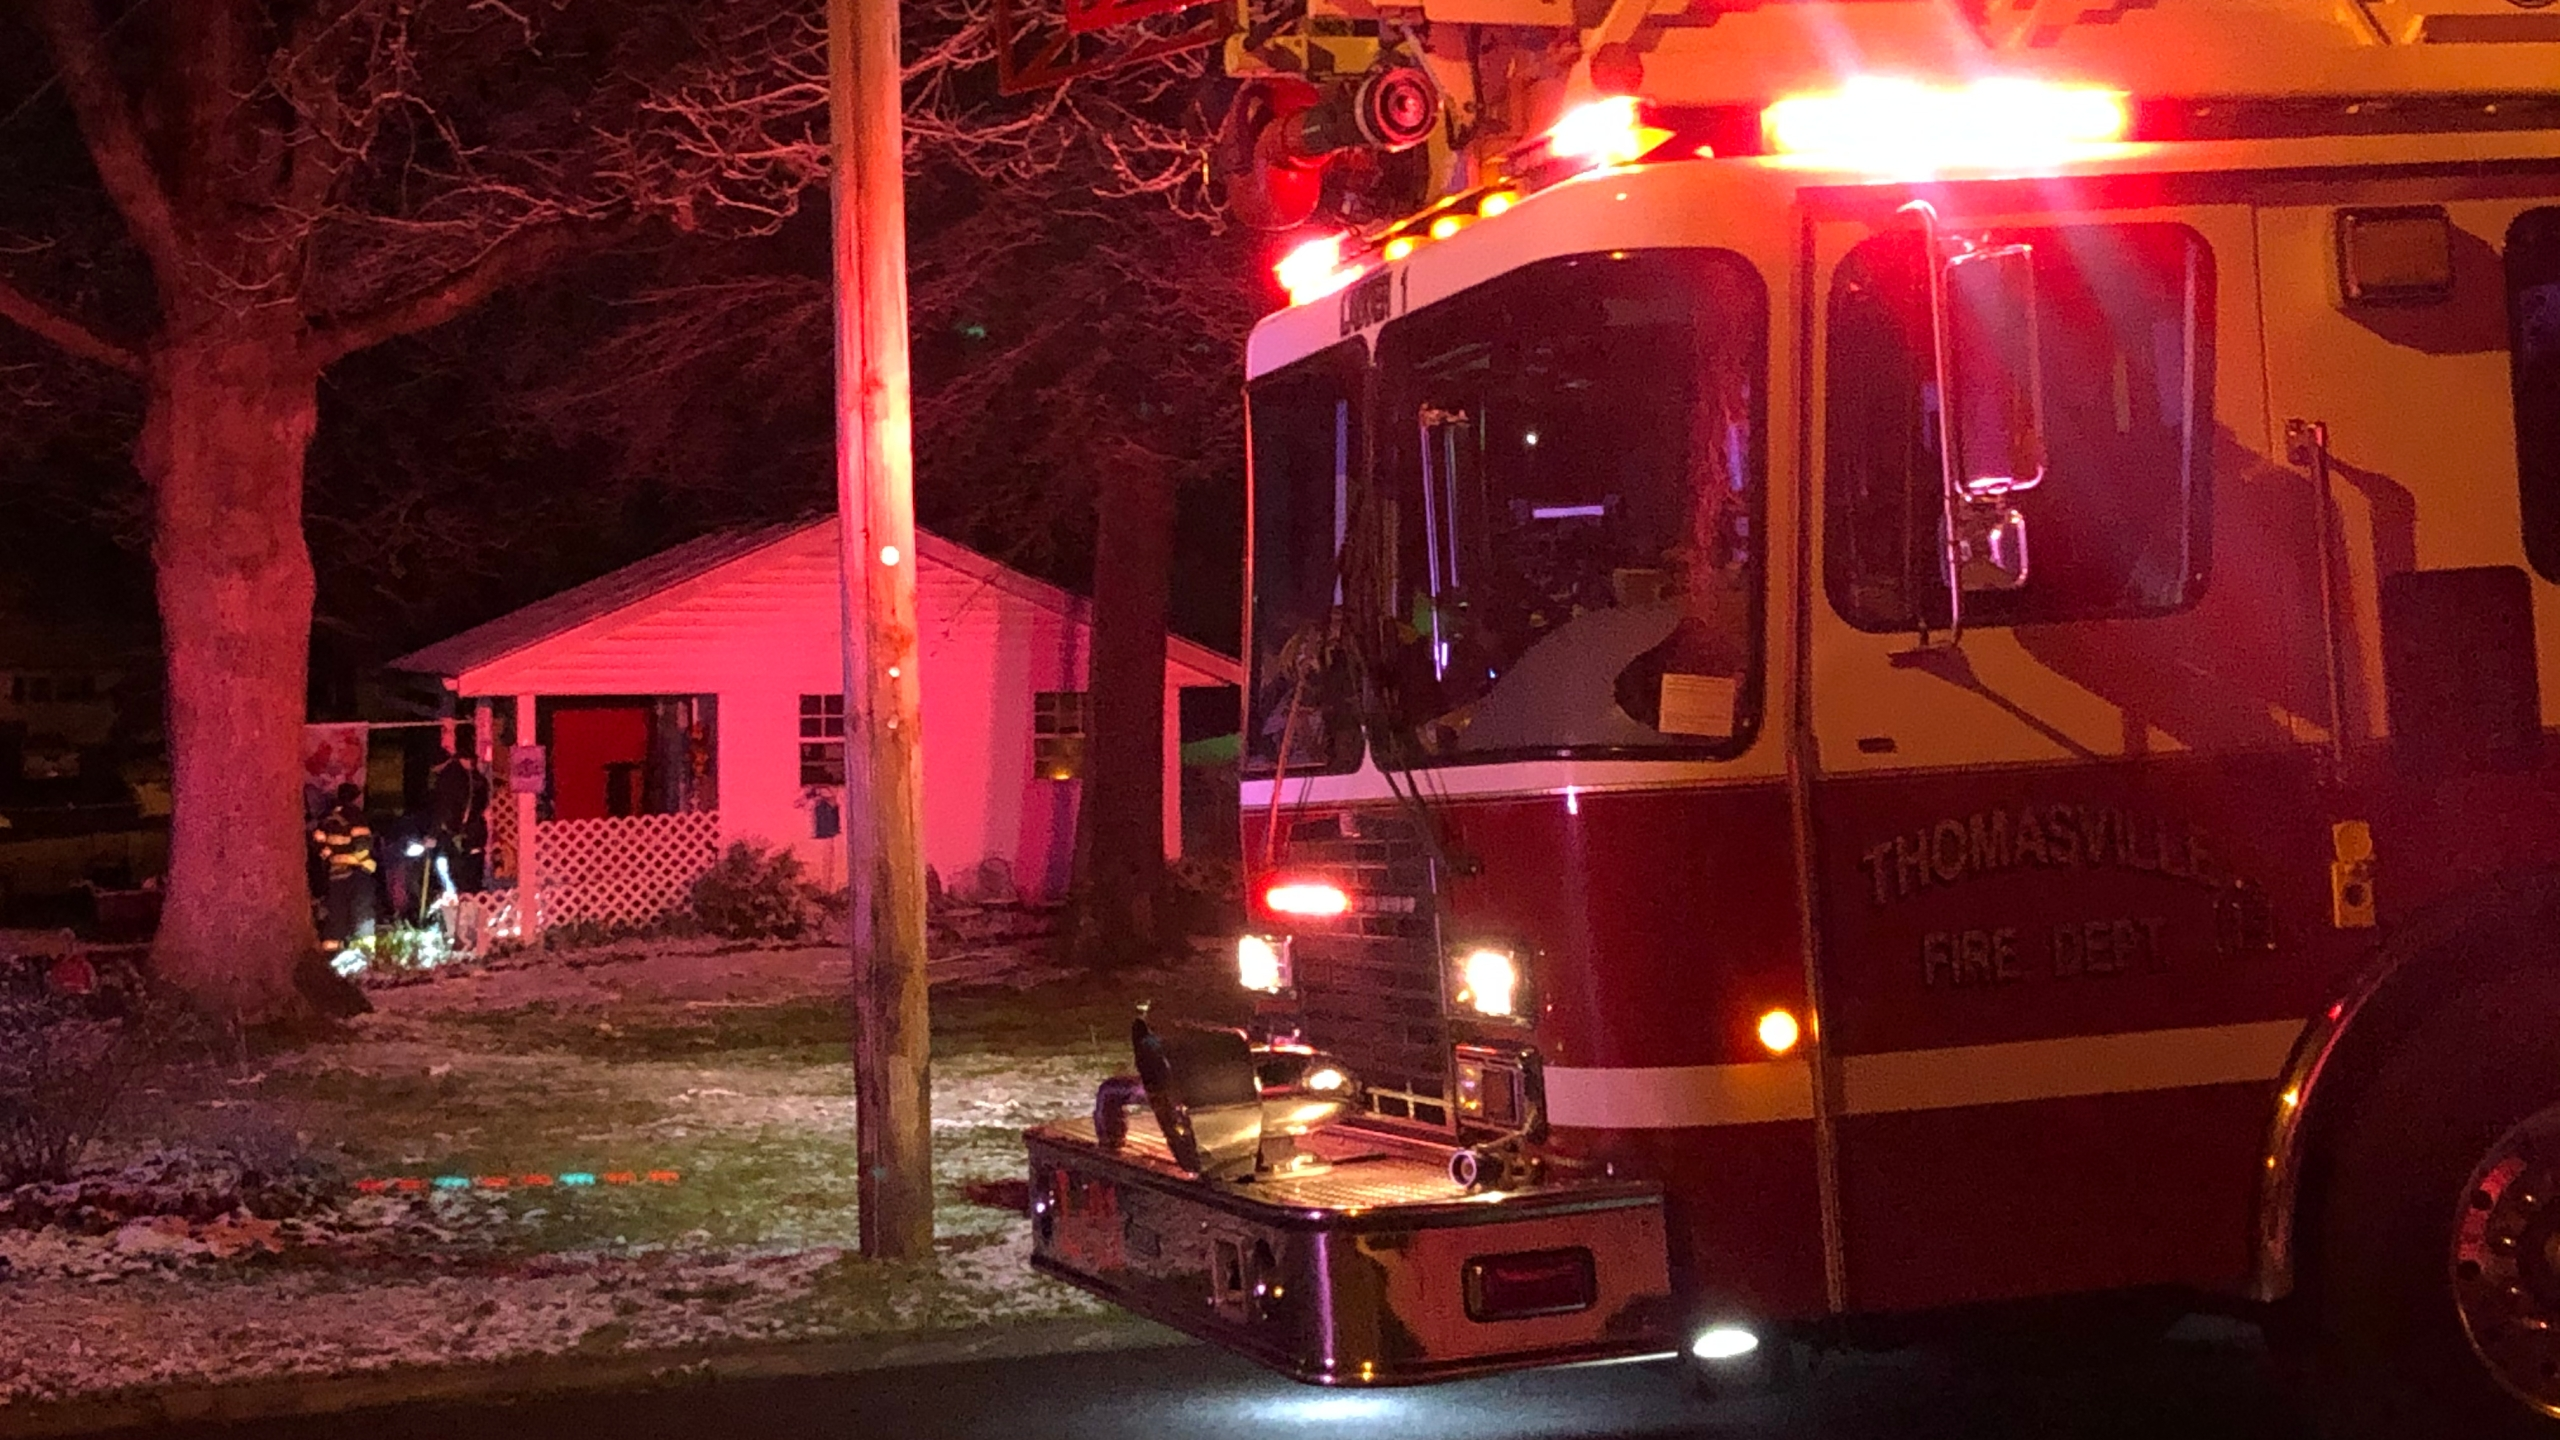 Man taken to the hospital after fire in Thomasville (Chris Weaver/WGHP)